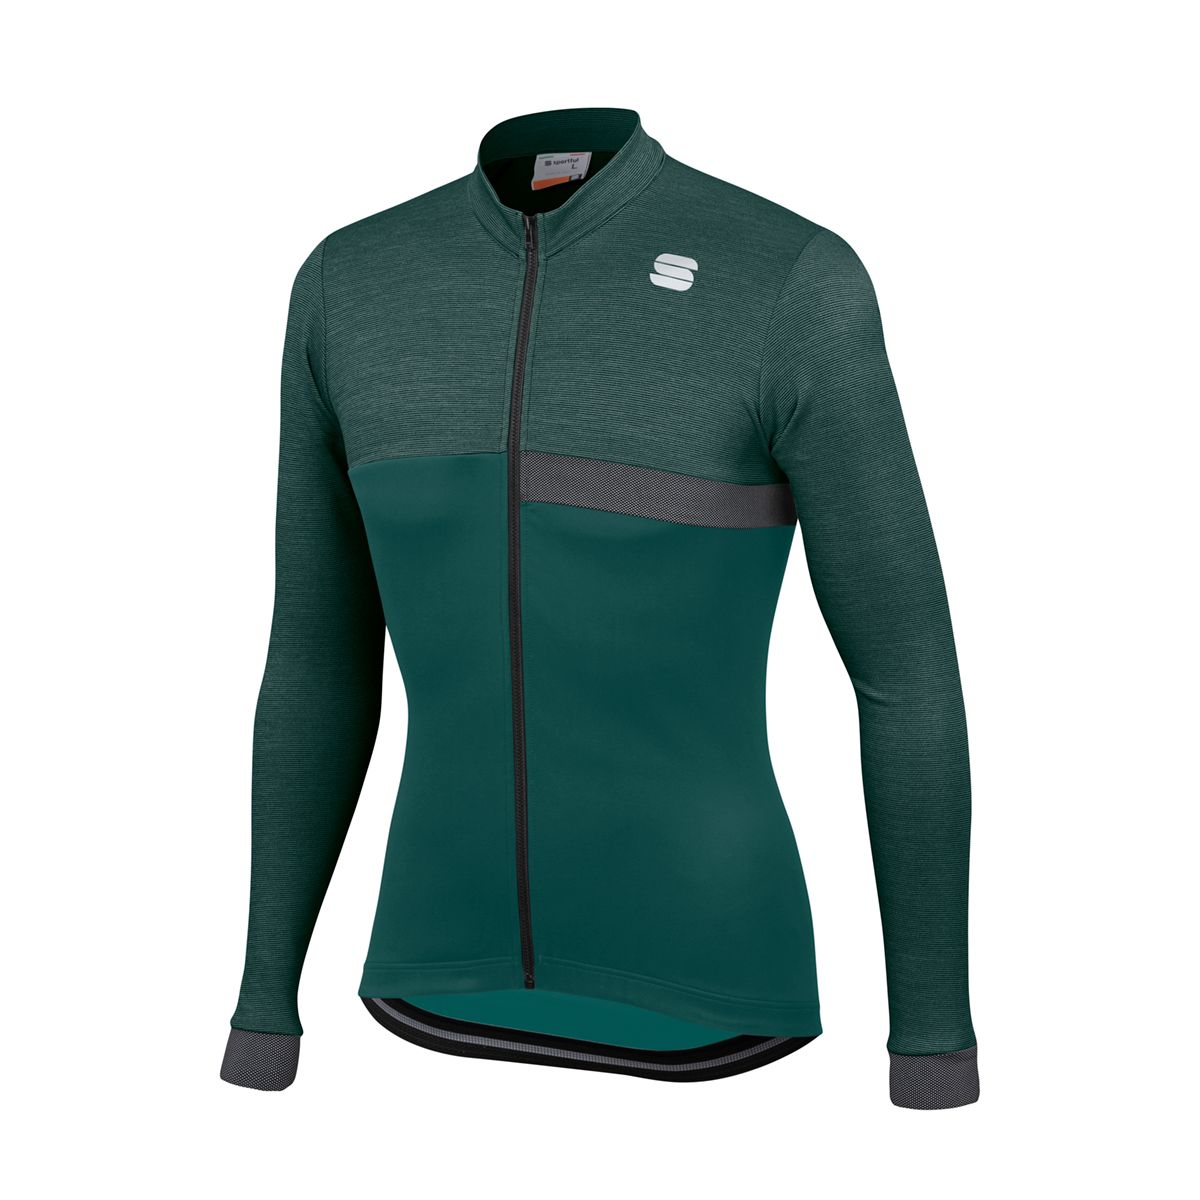 GIARA THERMAL JERSEY men's long sleeve cycling jersey